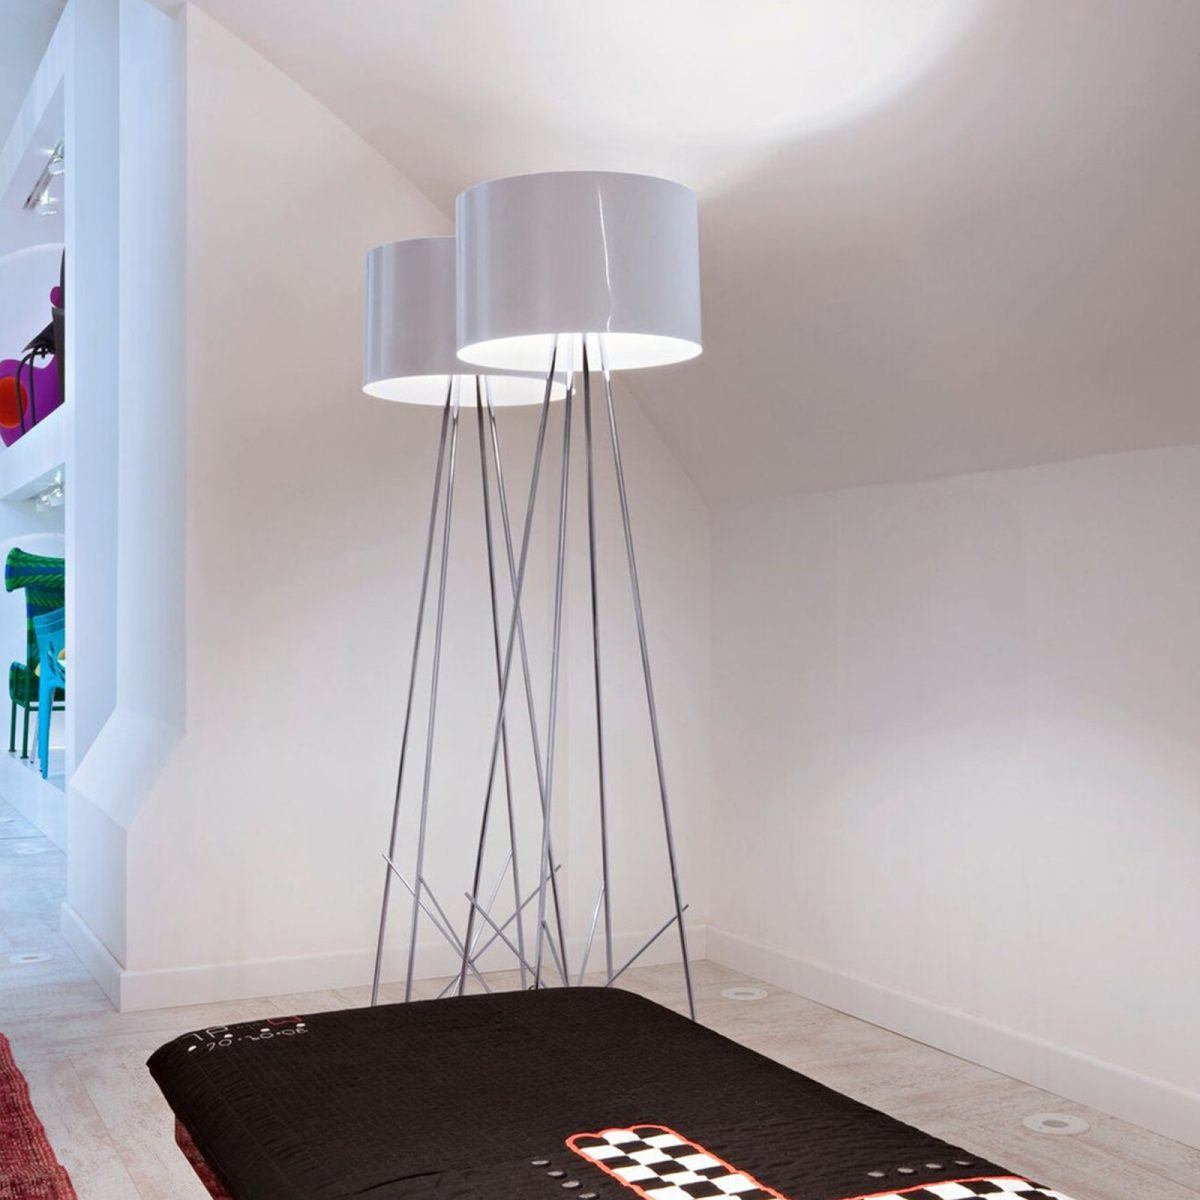 ray-f1-f2-floor-lamp-flosx